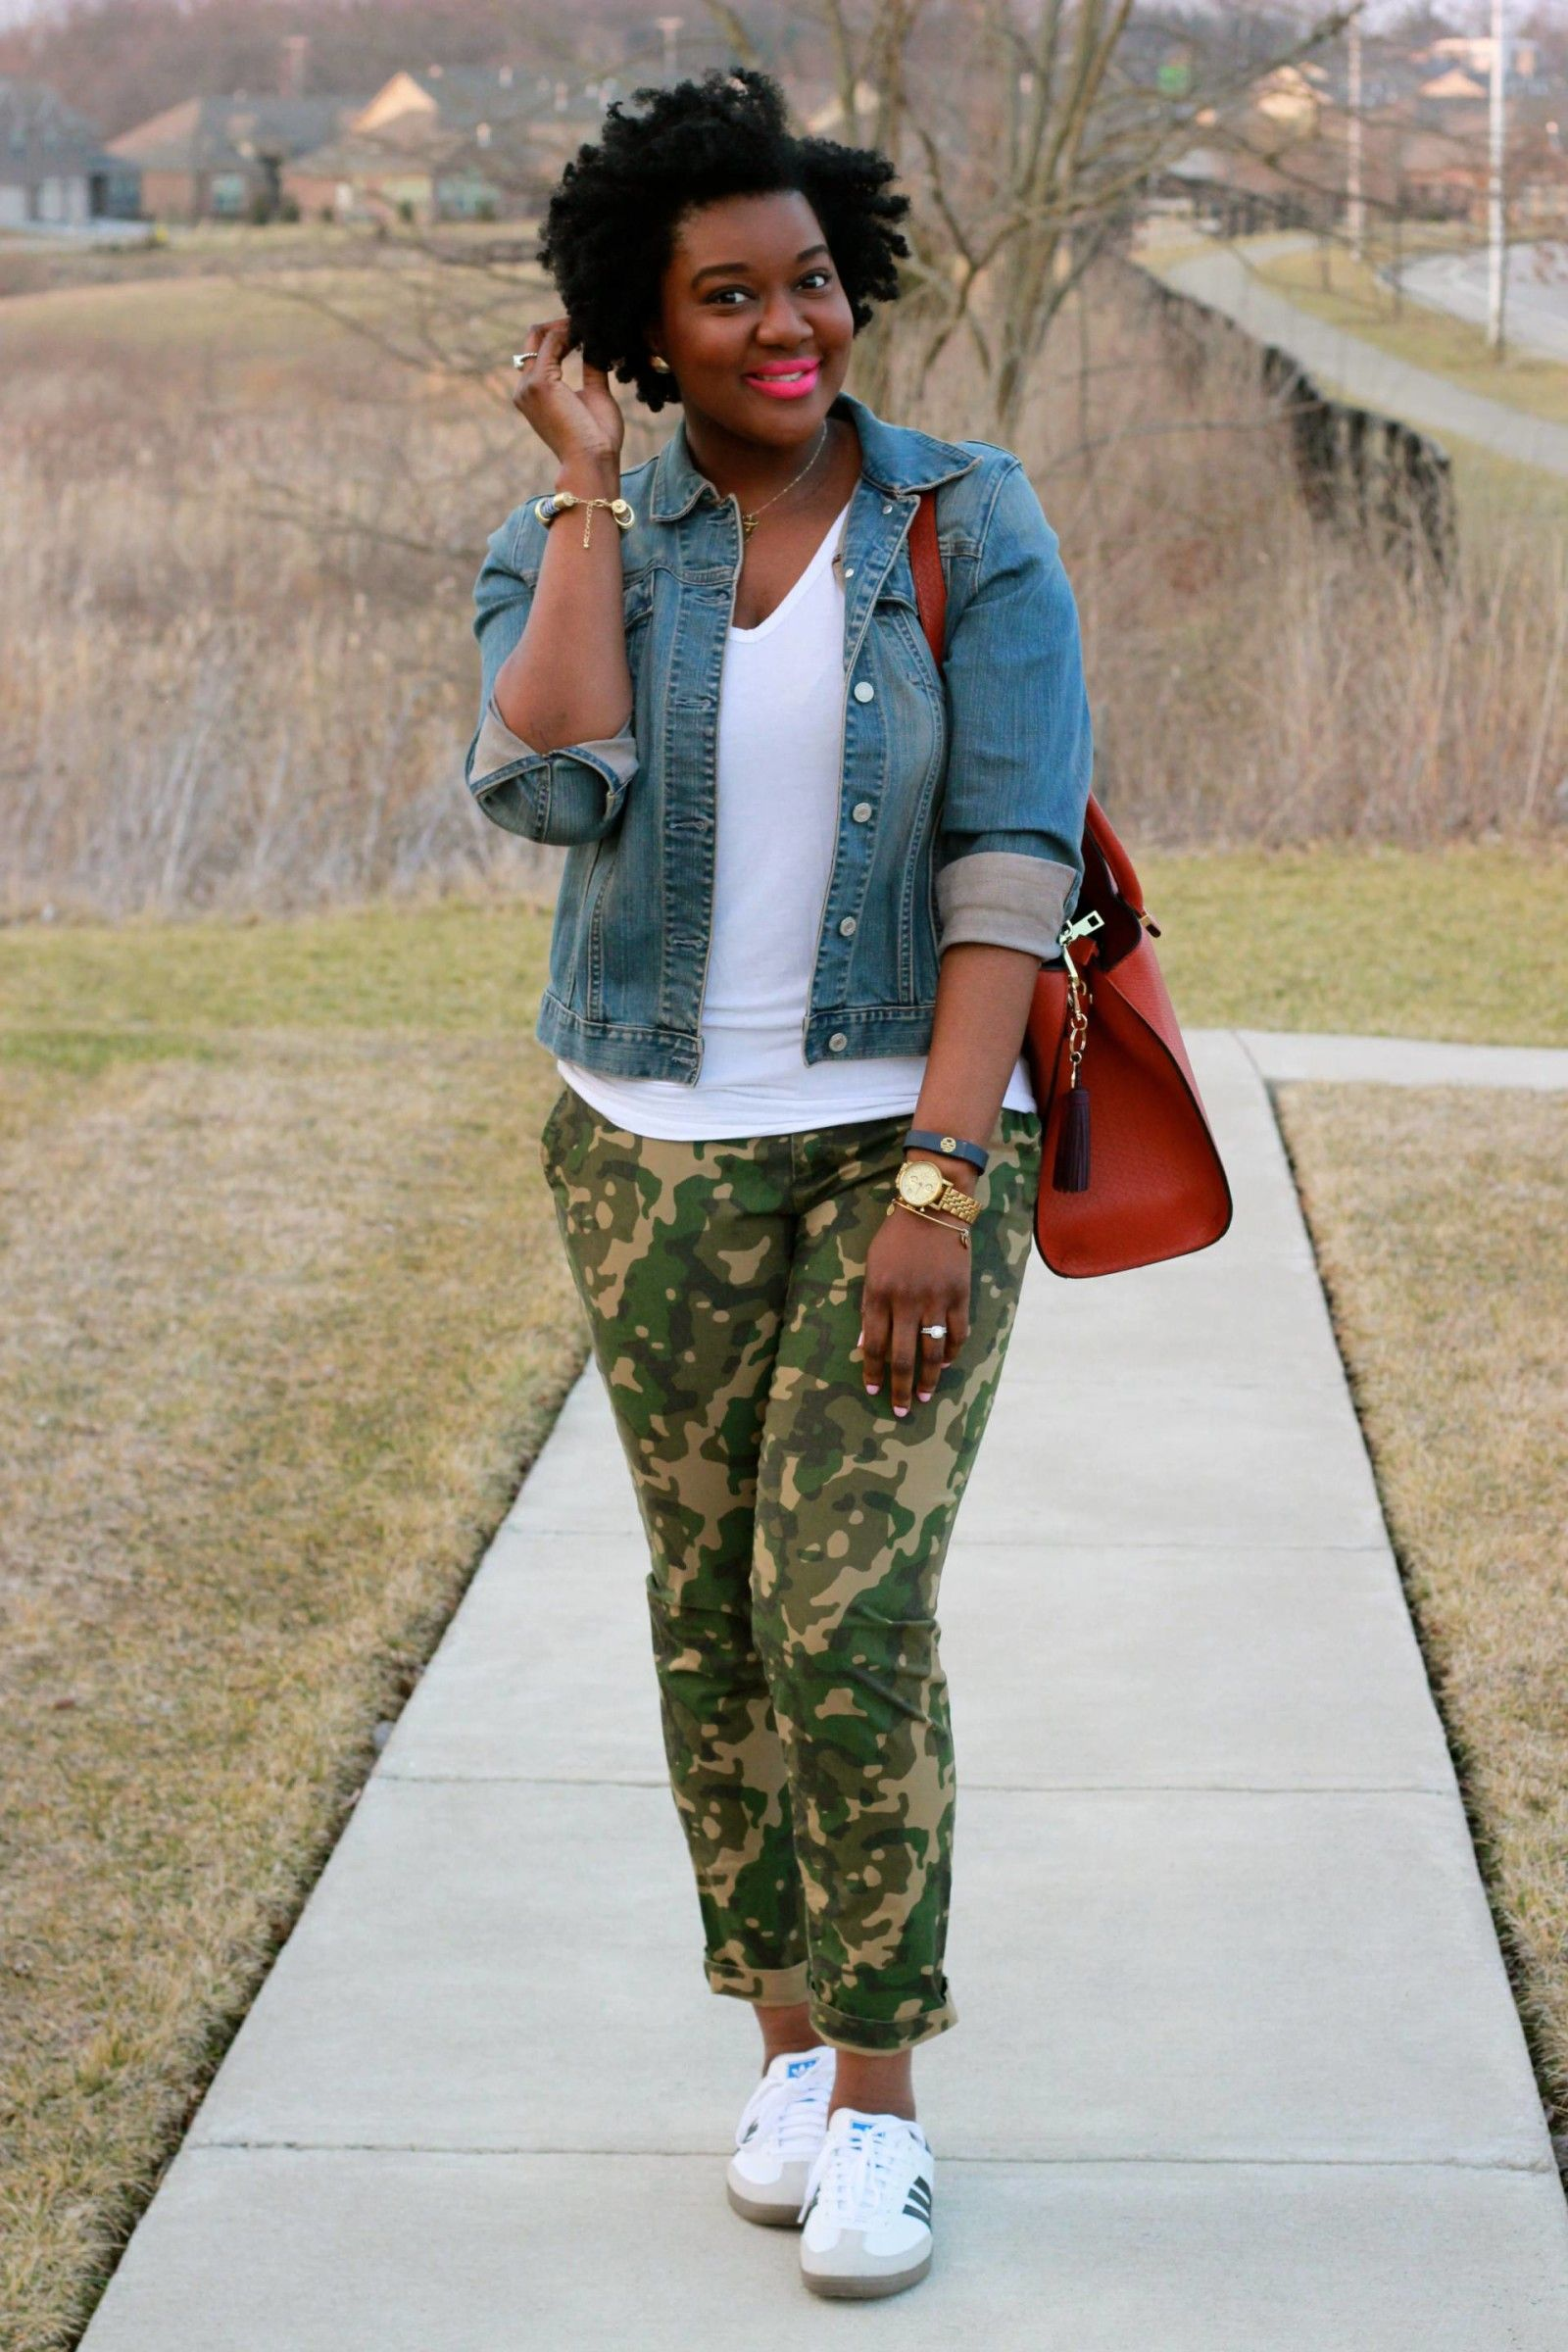 Camo Pants Denim Jacket Camo Pants Outfit Stylish Outfits Outfits With Camo [ 2400 x 1600 Pixel ]